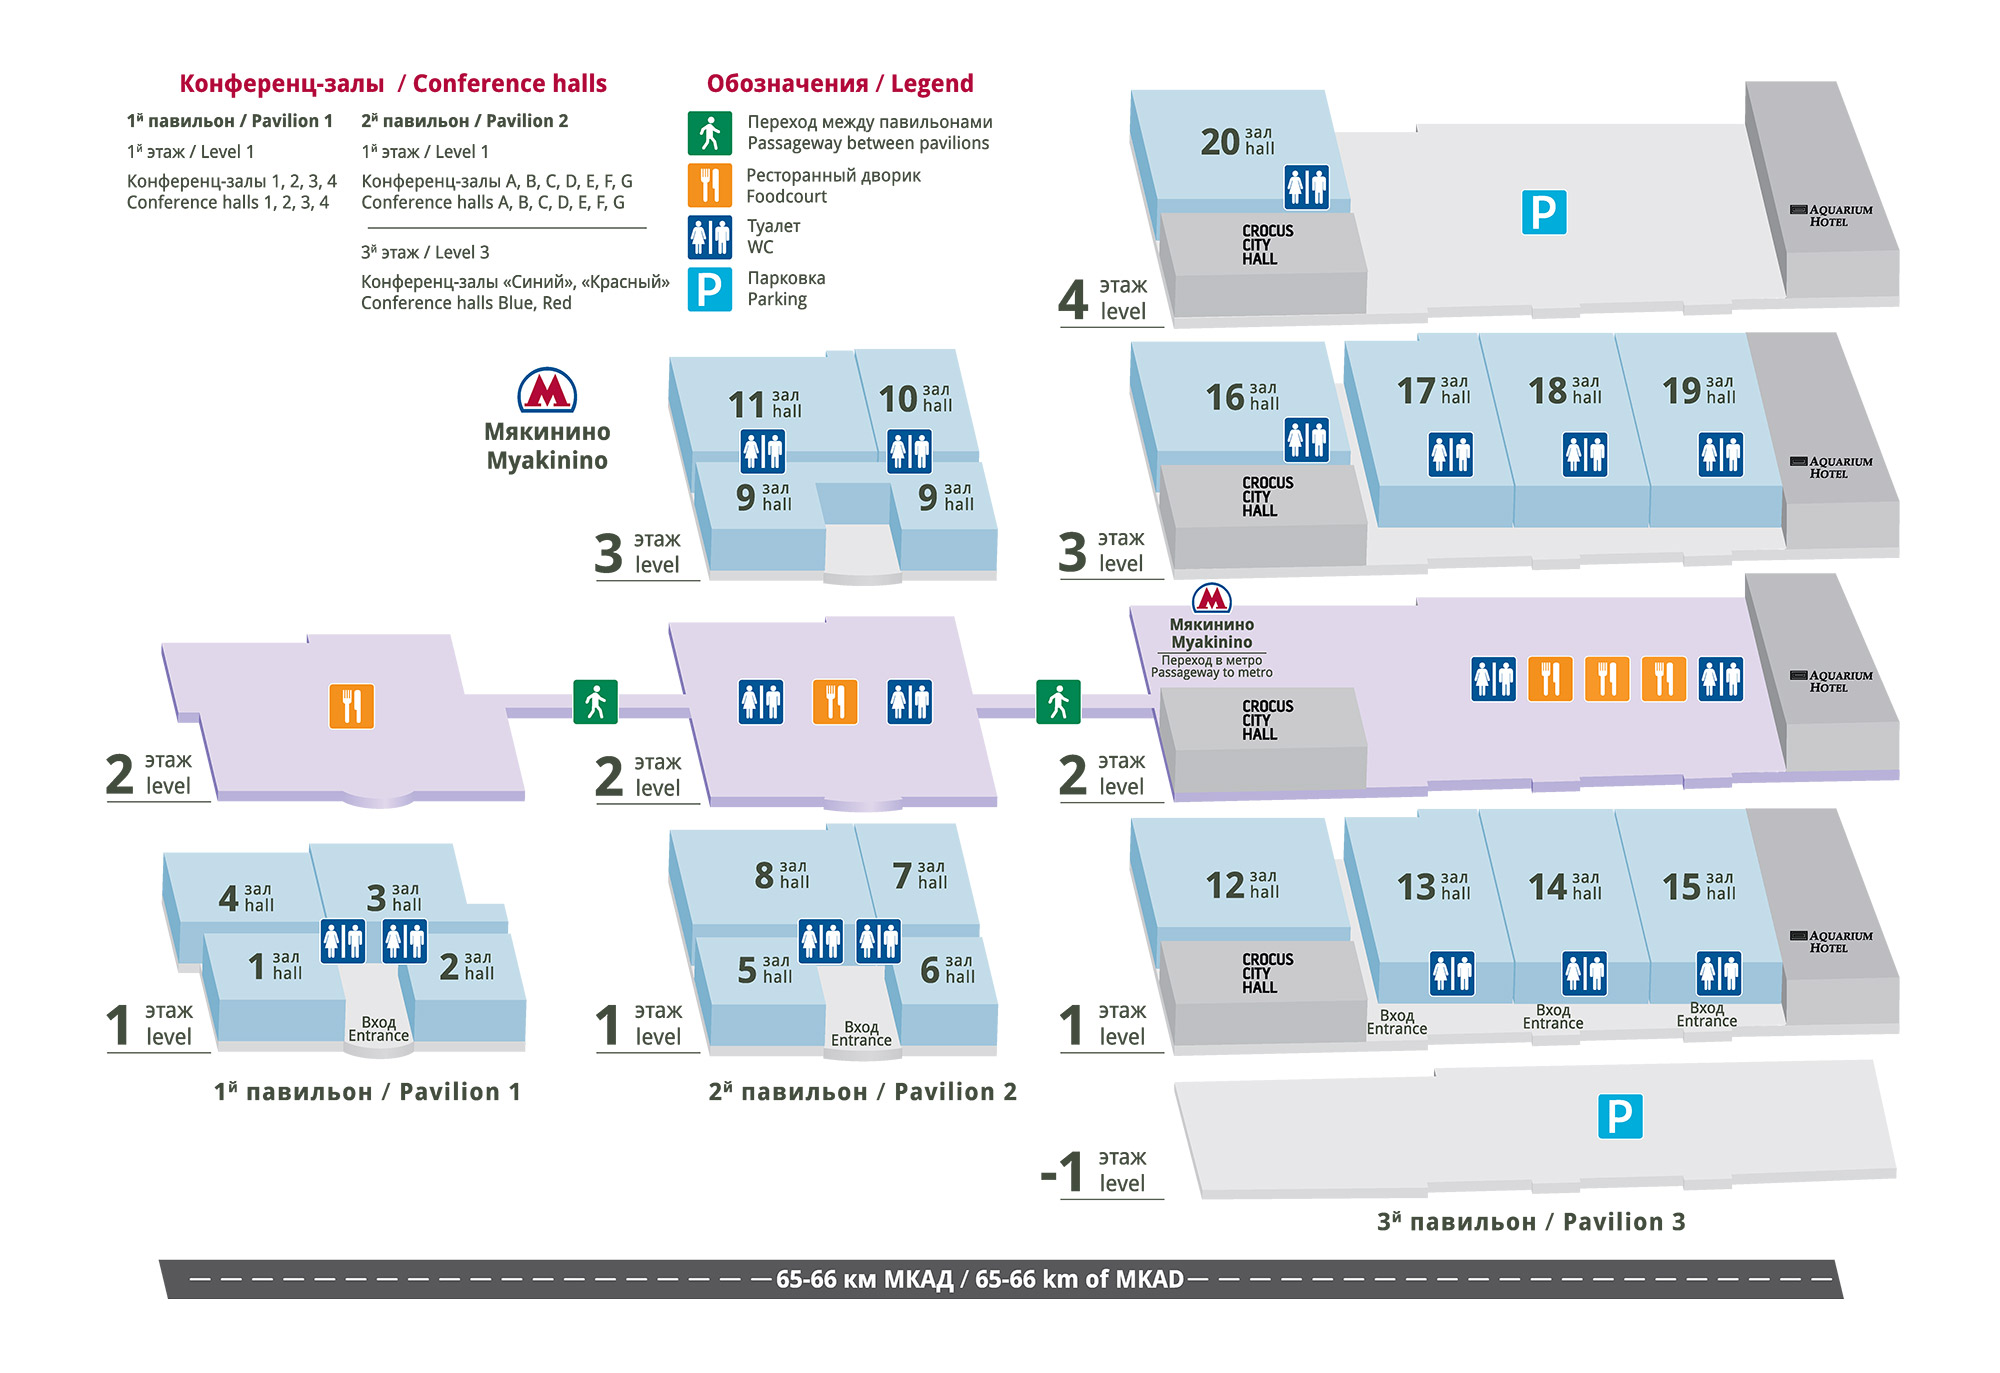 Exhibition centre layout